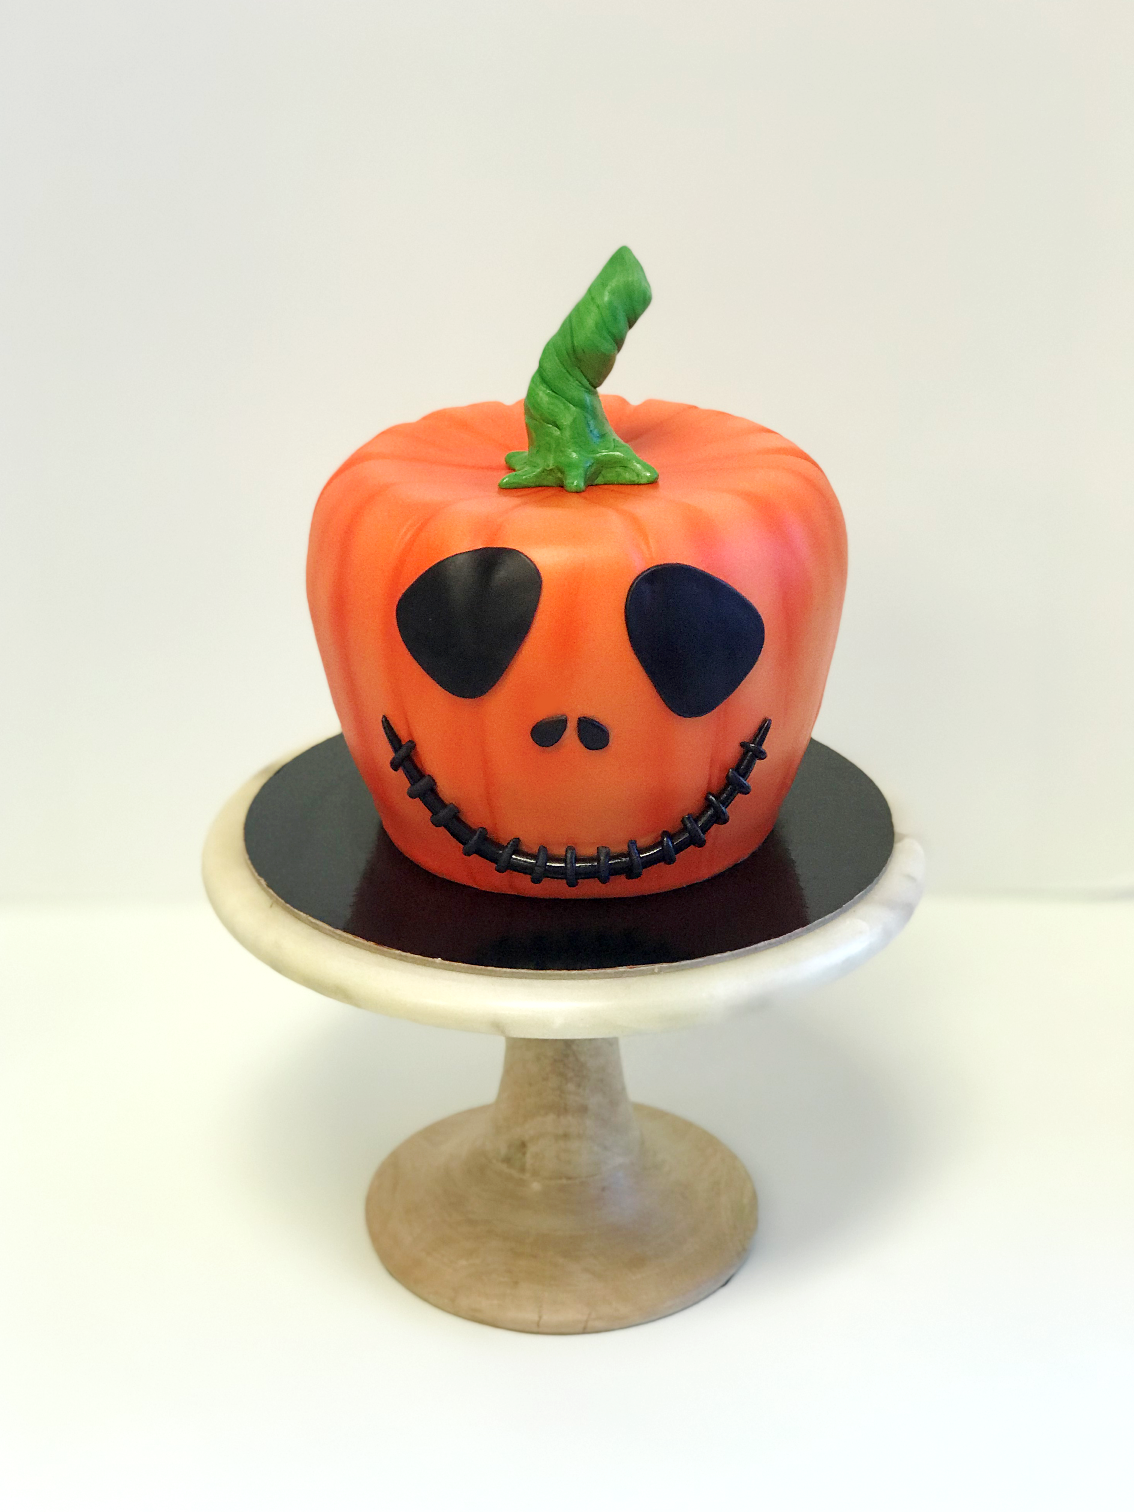 Whippt Desserts - Halloween Auction Cake 2018 2